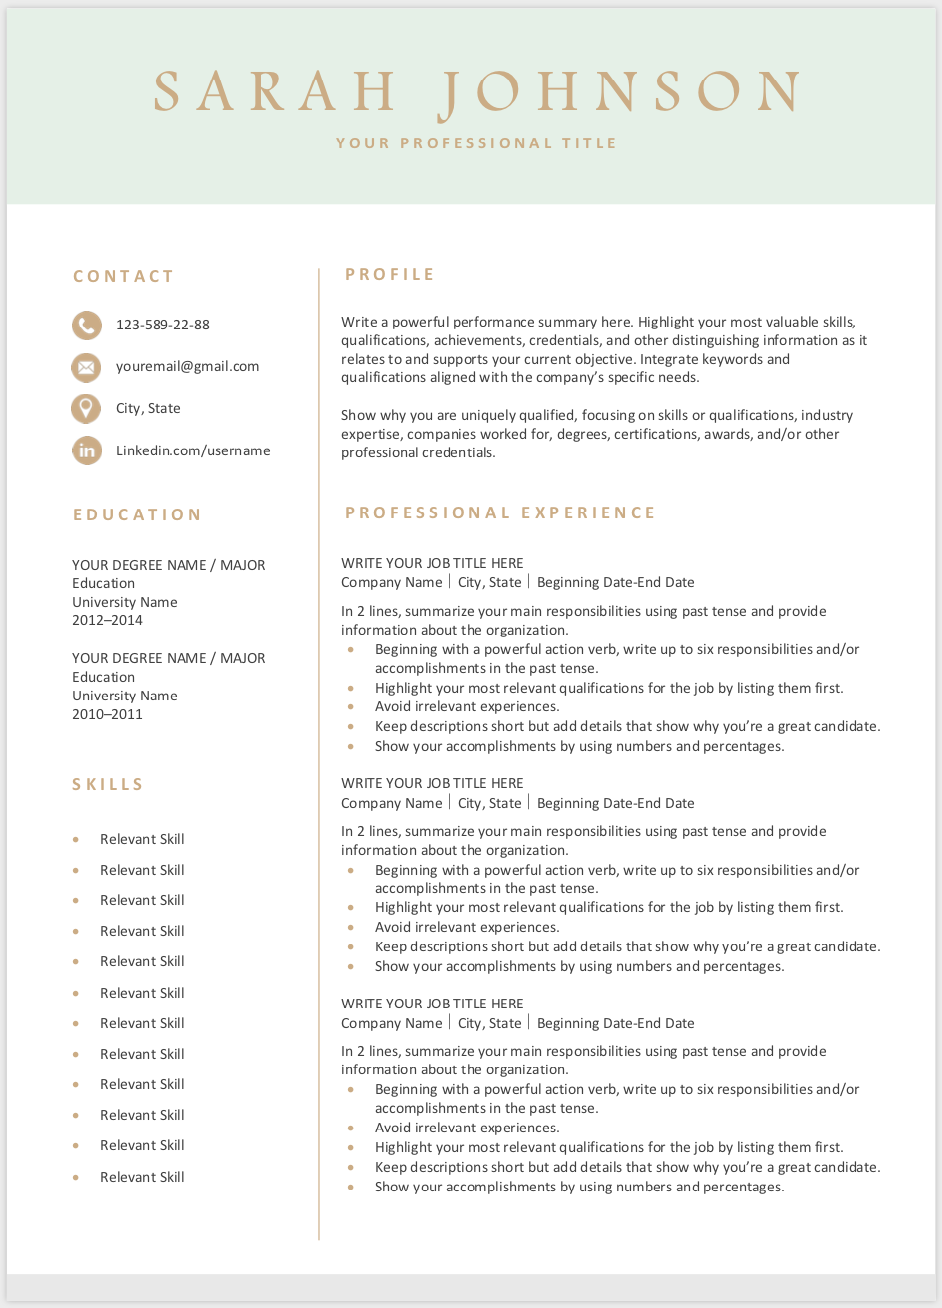 Free Resume Template Downloadable resume template, Free